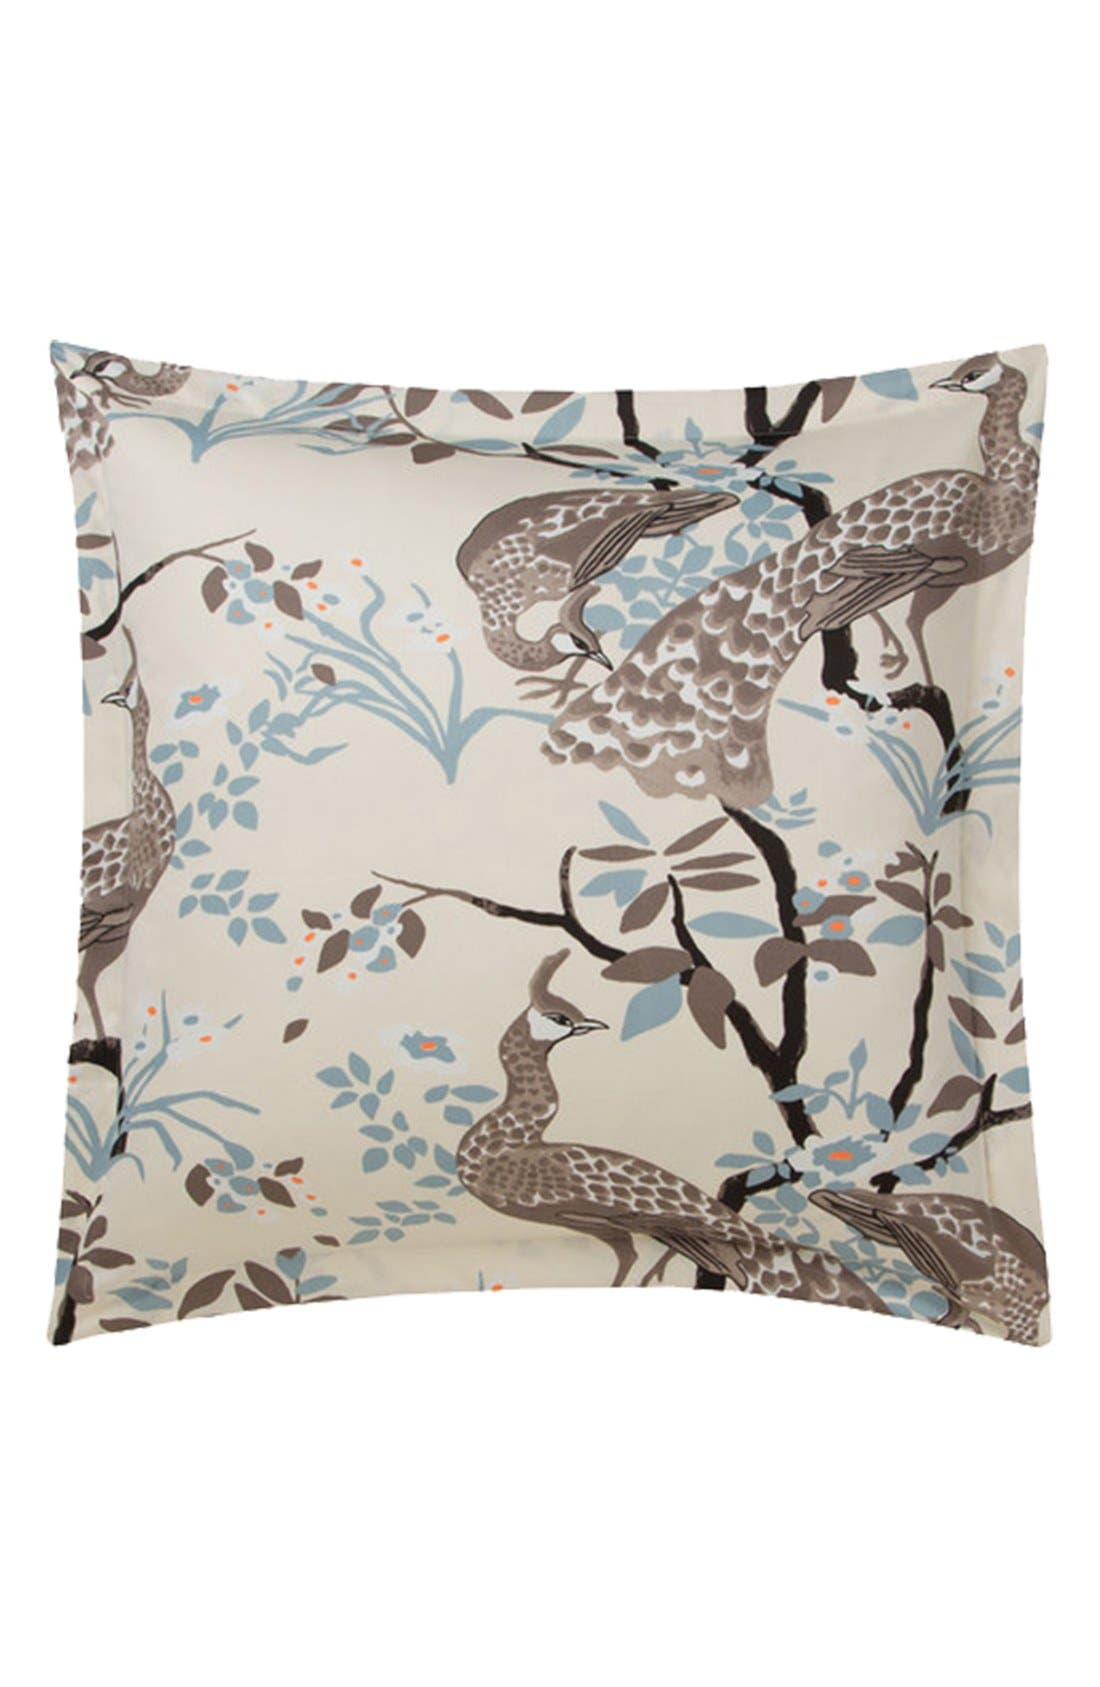 DwellStudio 'Peacock' Euro Shams (Set of 2)